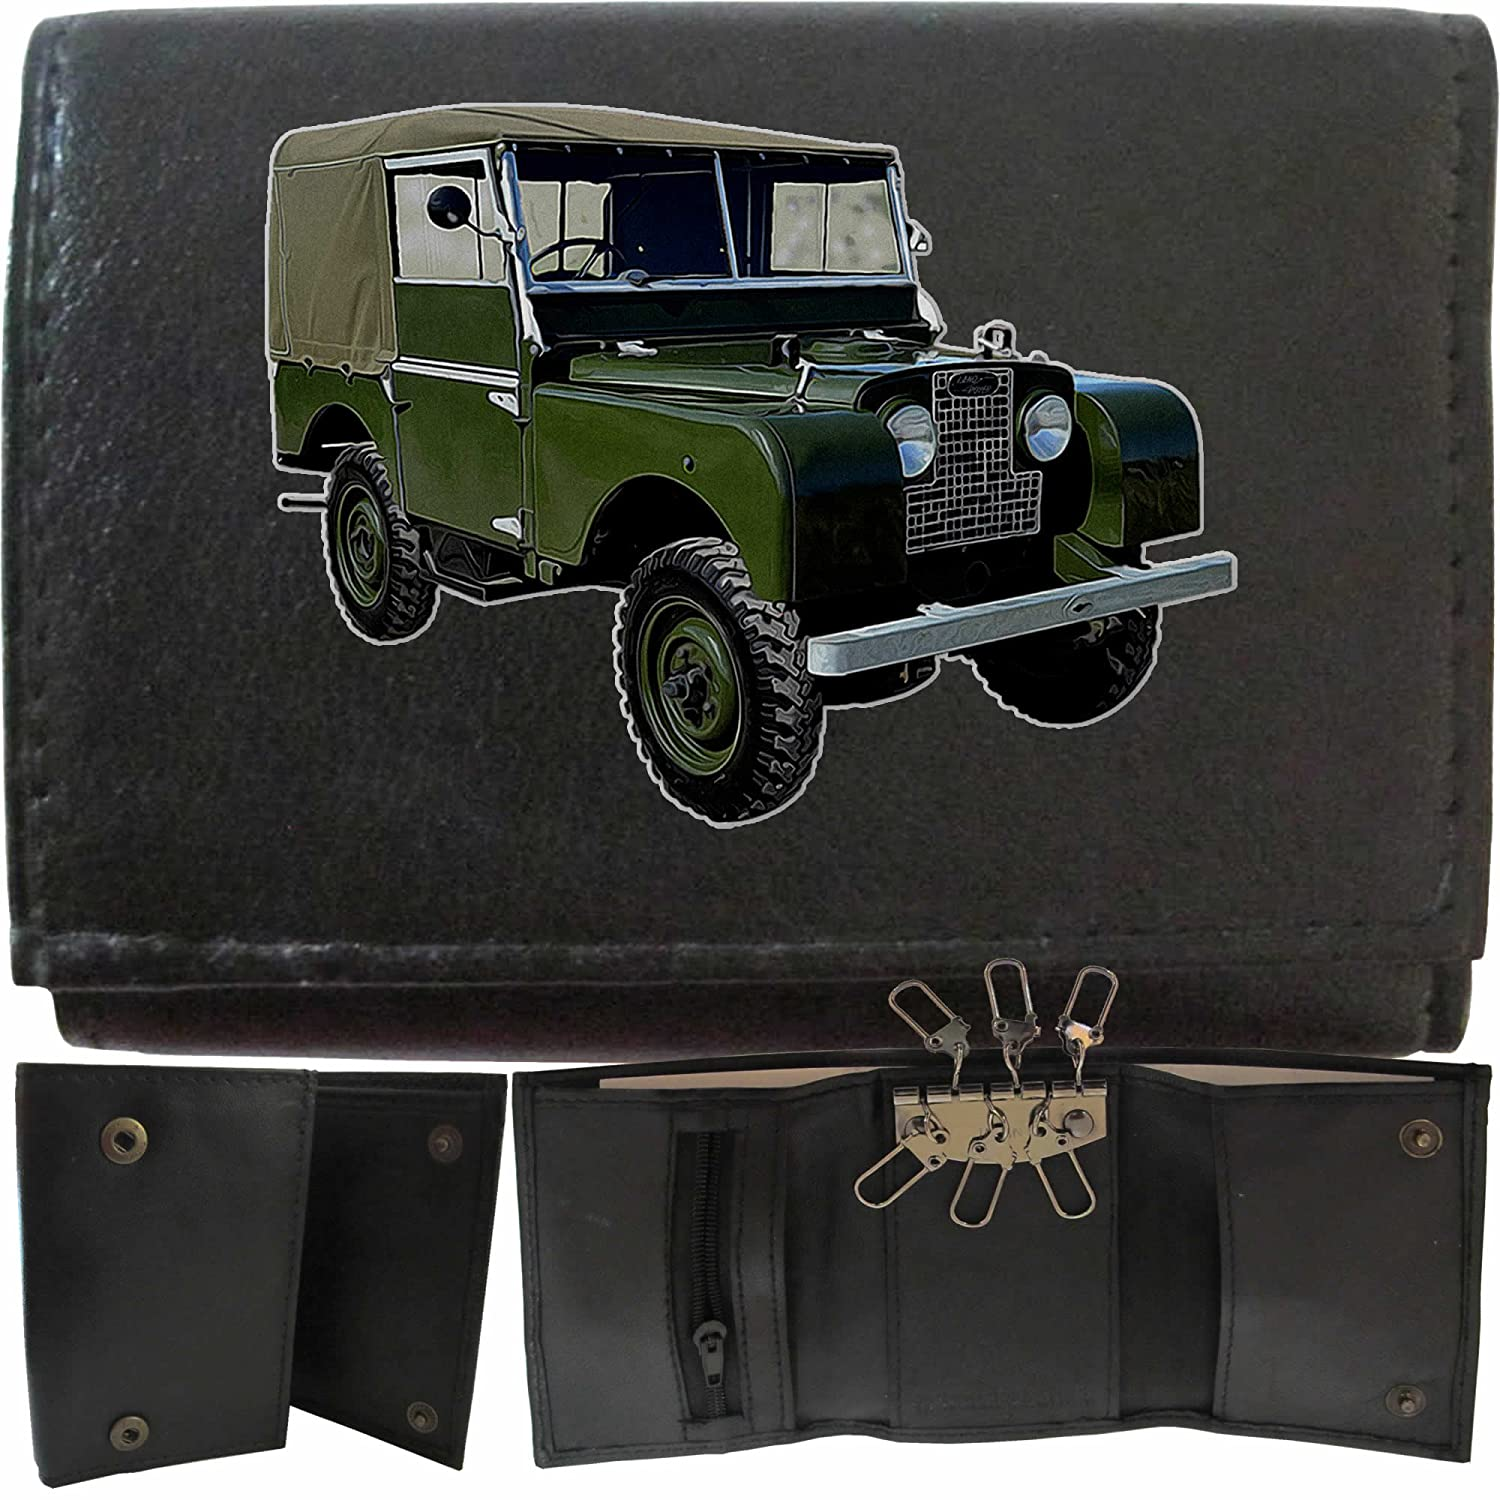 LandRover Series 1 image on KLASSEK Brand Men Leather Wallet Keyring Key rack Car Moto accessory gift with Metal Box NOT OFFICIAL Land Rover Merchandise